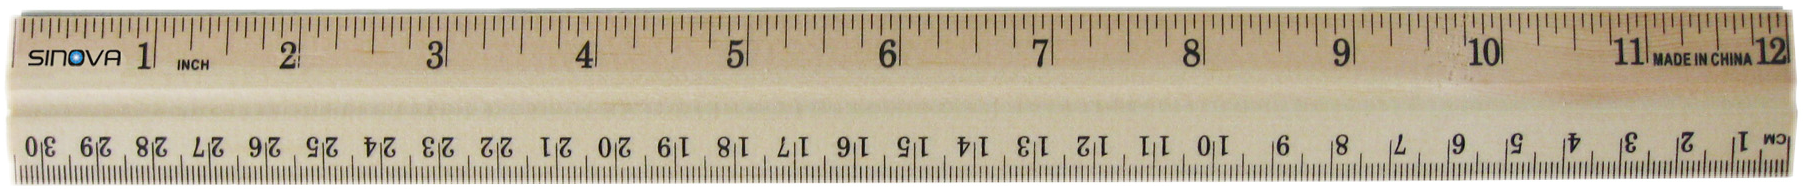 ruler scale freetoedit